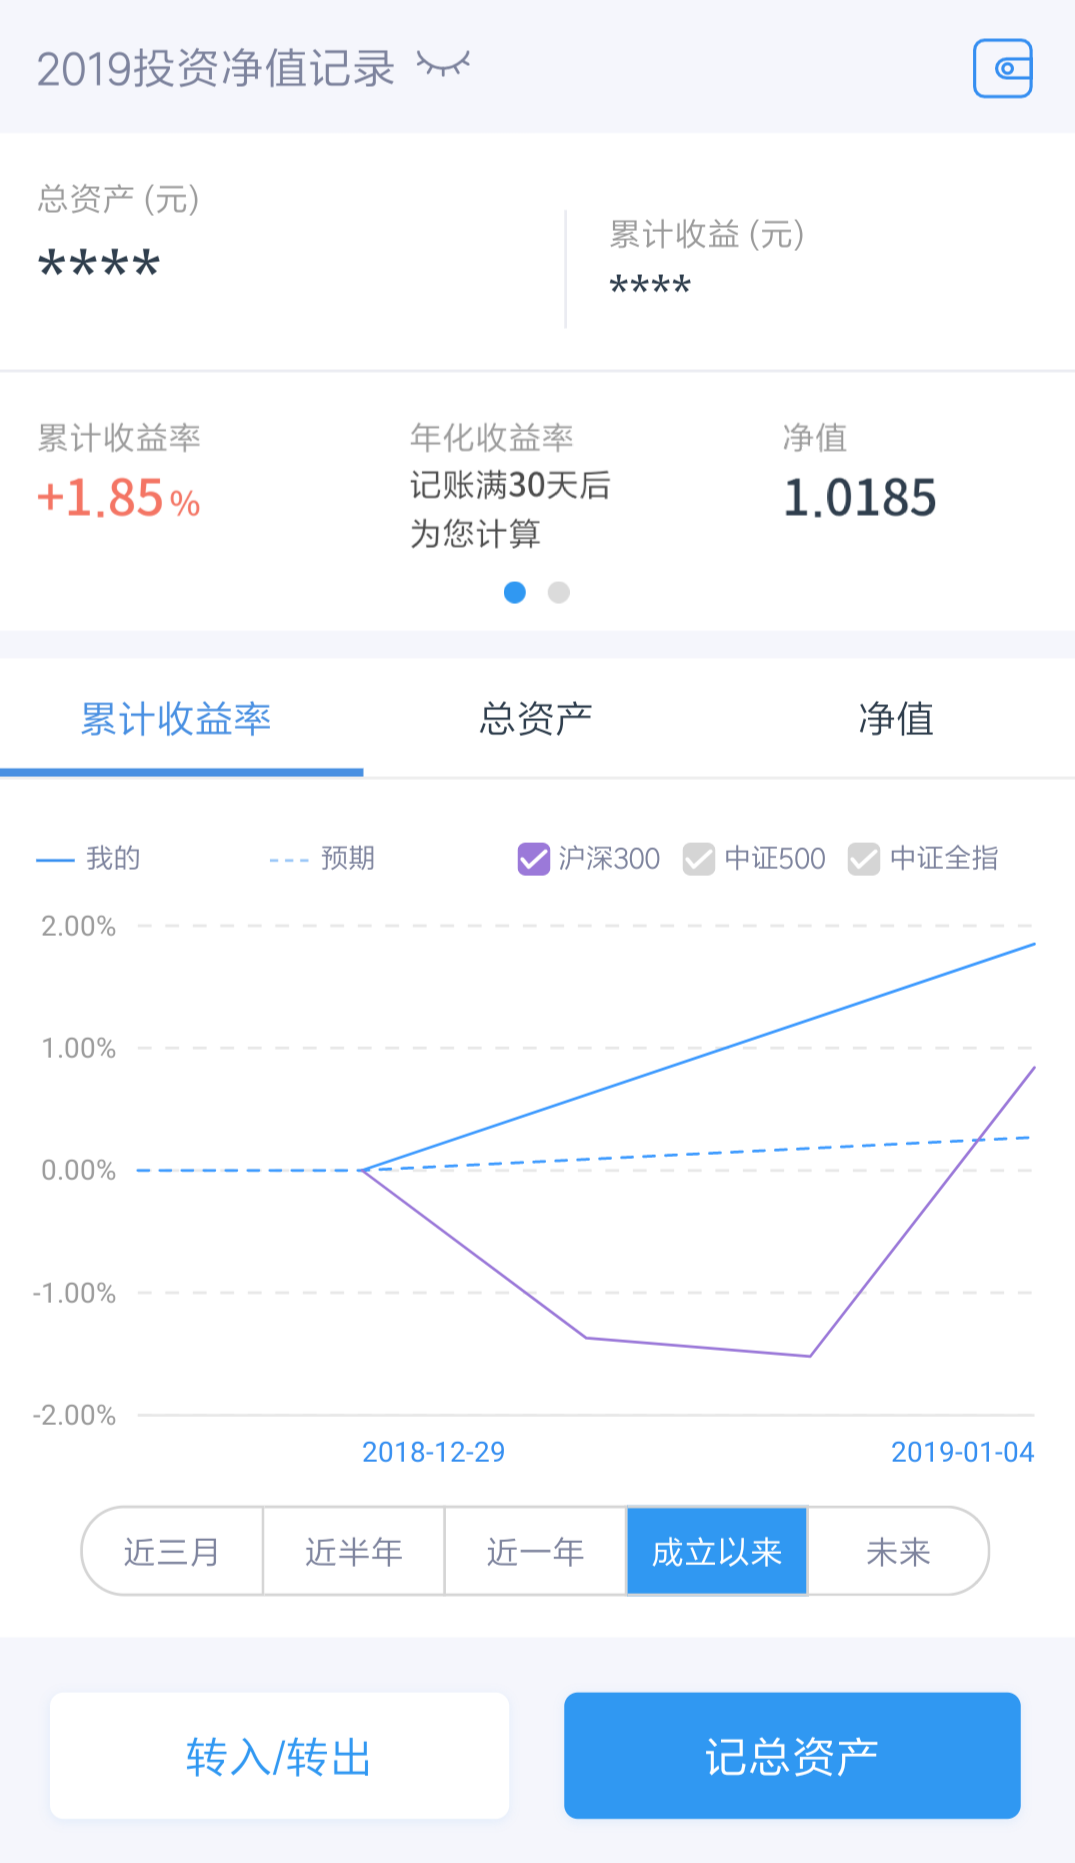 Screenshot_2019-01-05-17-34-52-115_com.tencent.mm_01.png